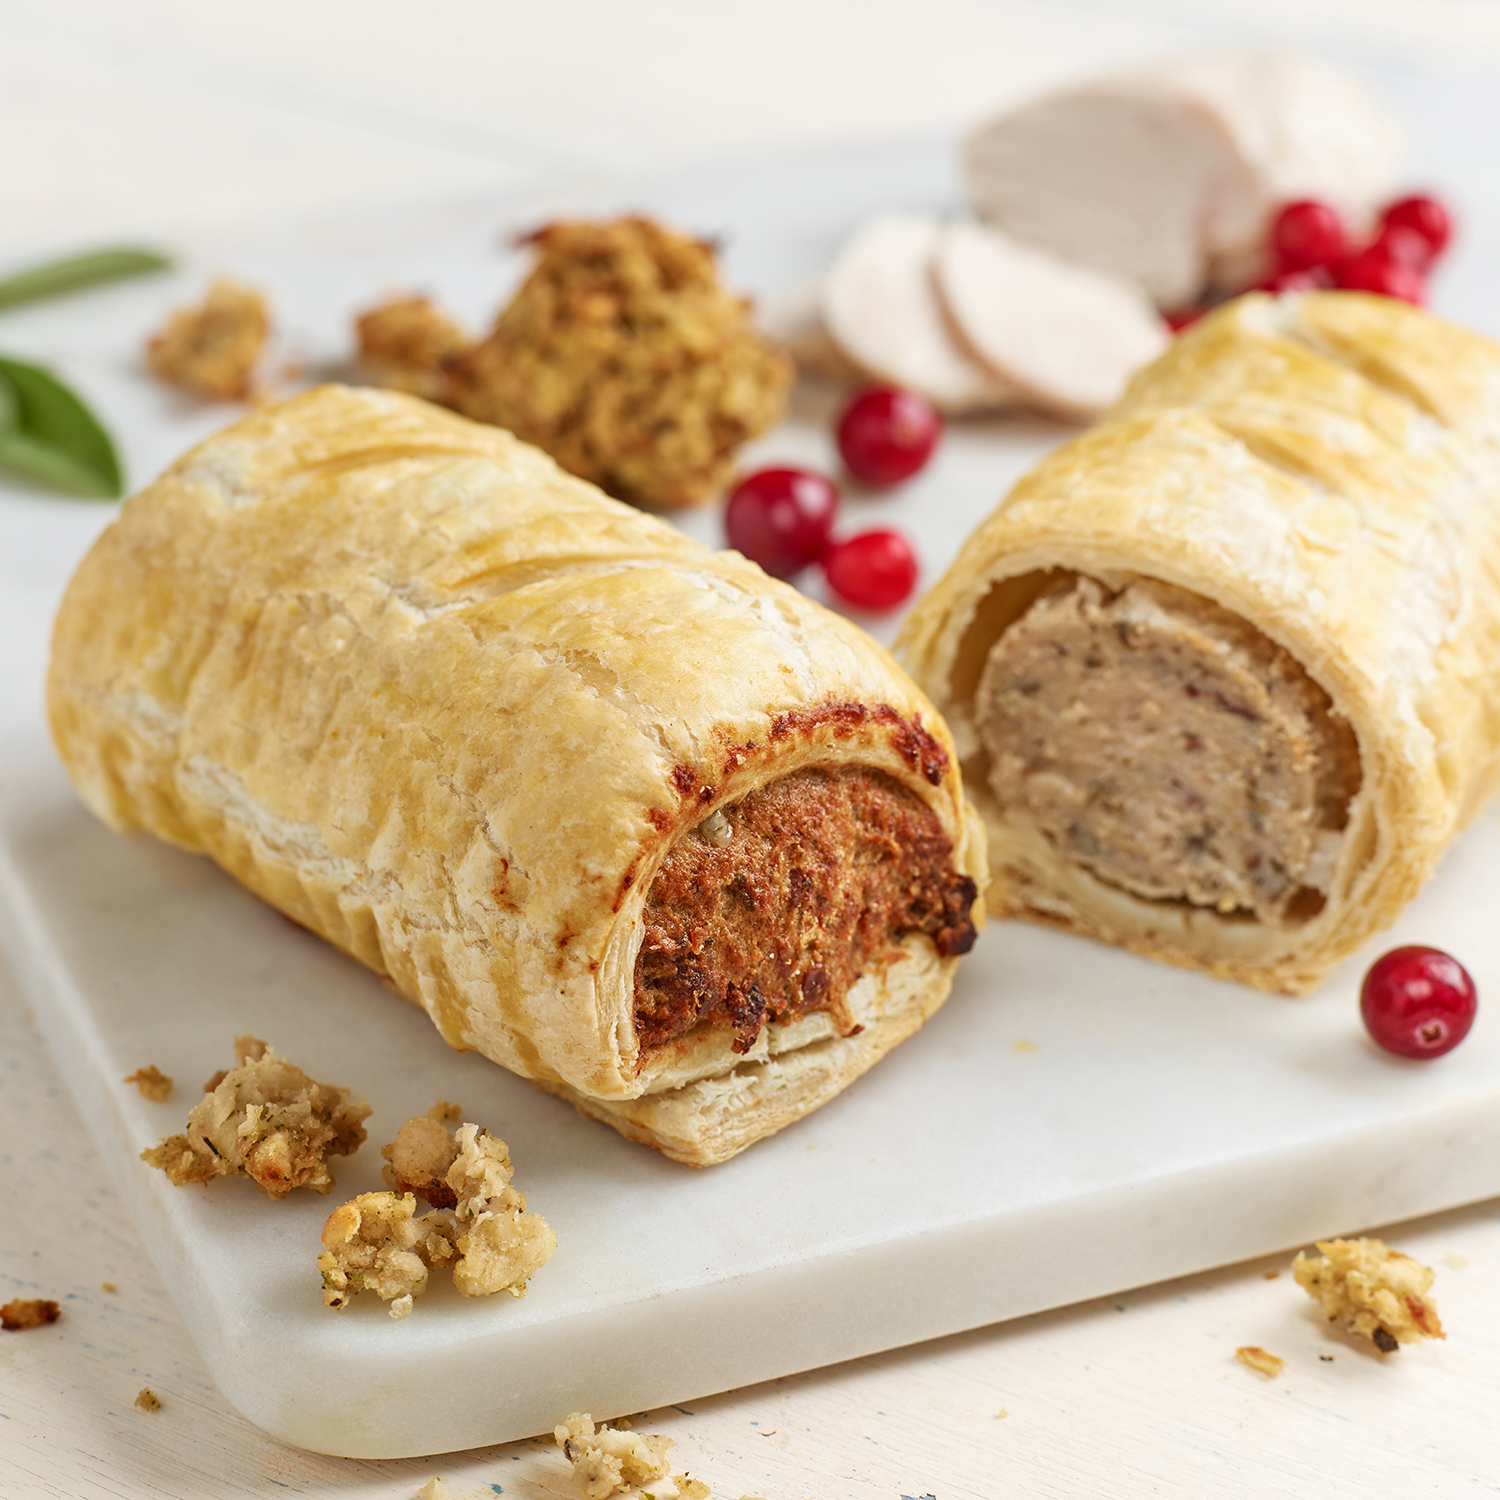 Pork, Chicken, Stuffing & Cranberry